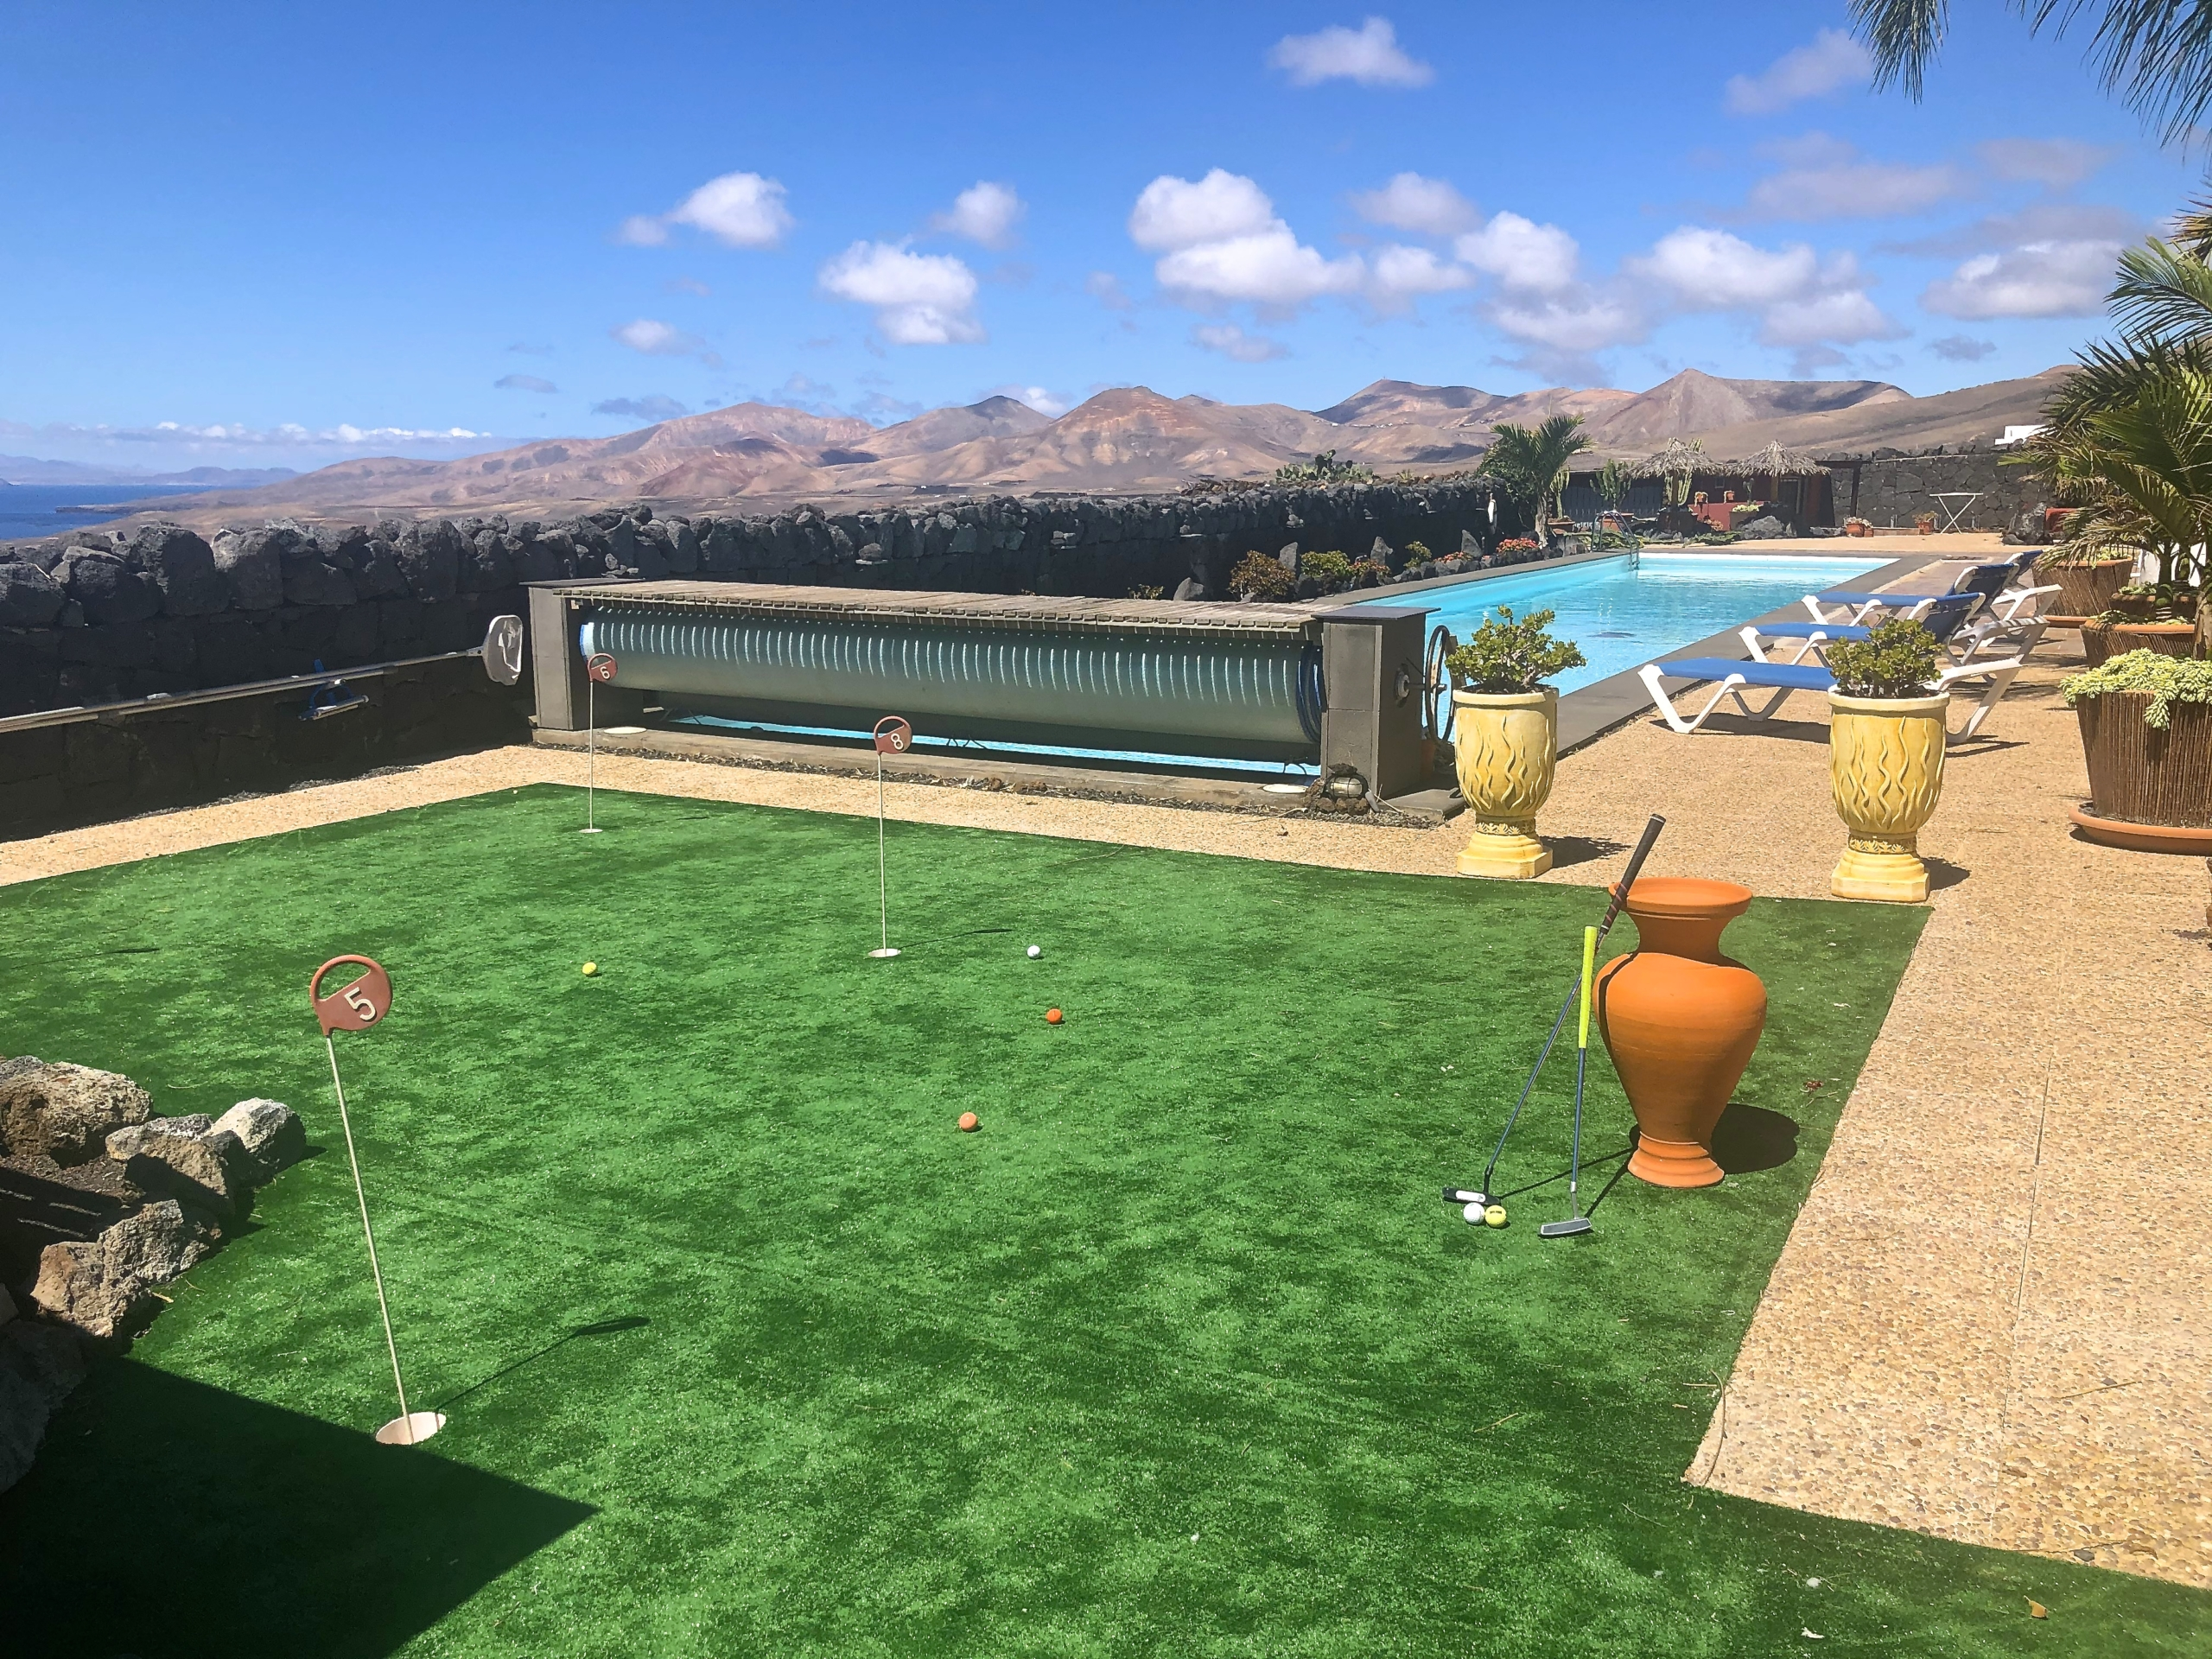 6 Hole Putting Green Villa Paraiso